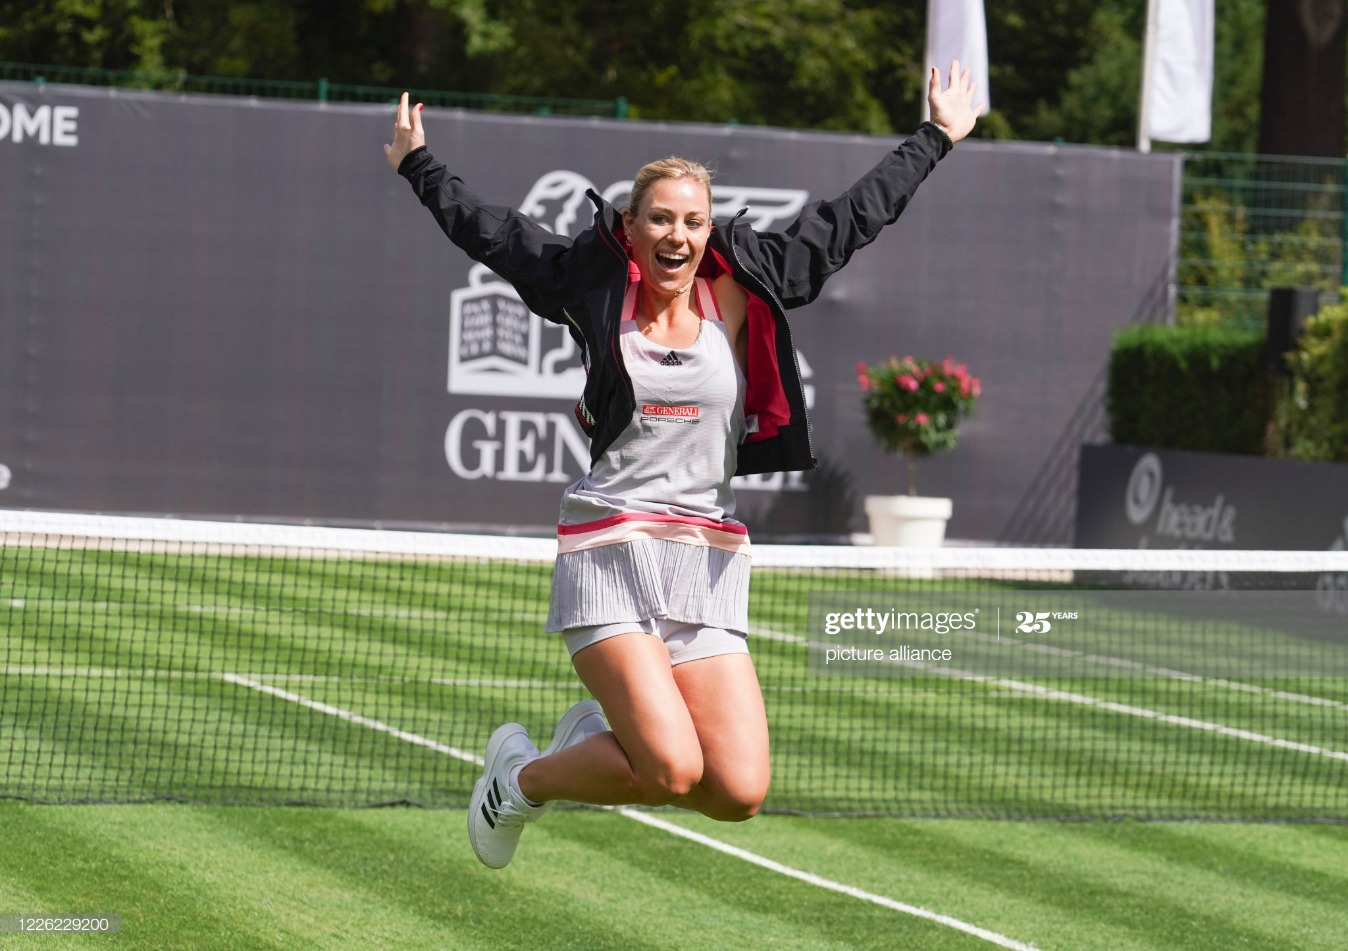 Tennis show match for the Center Court opening in Bad Homburg : News Photo